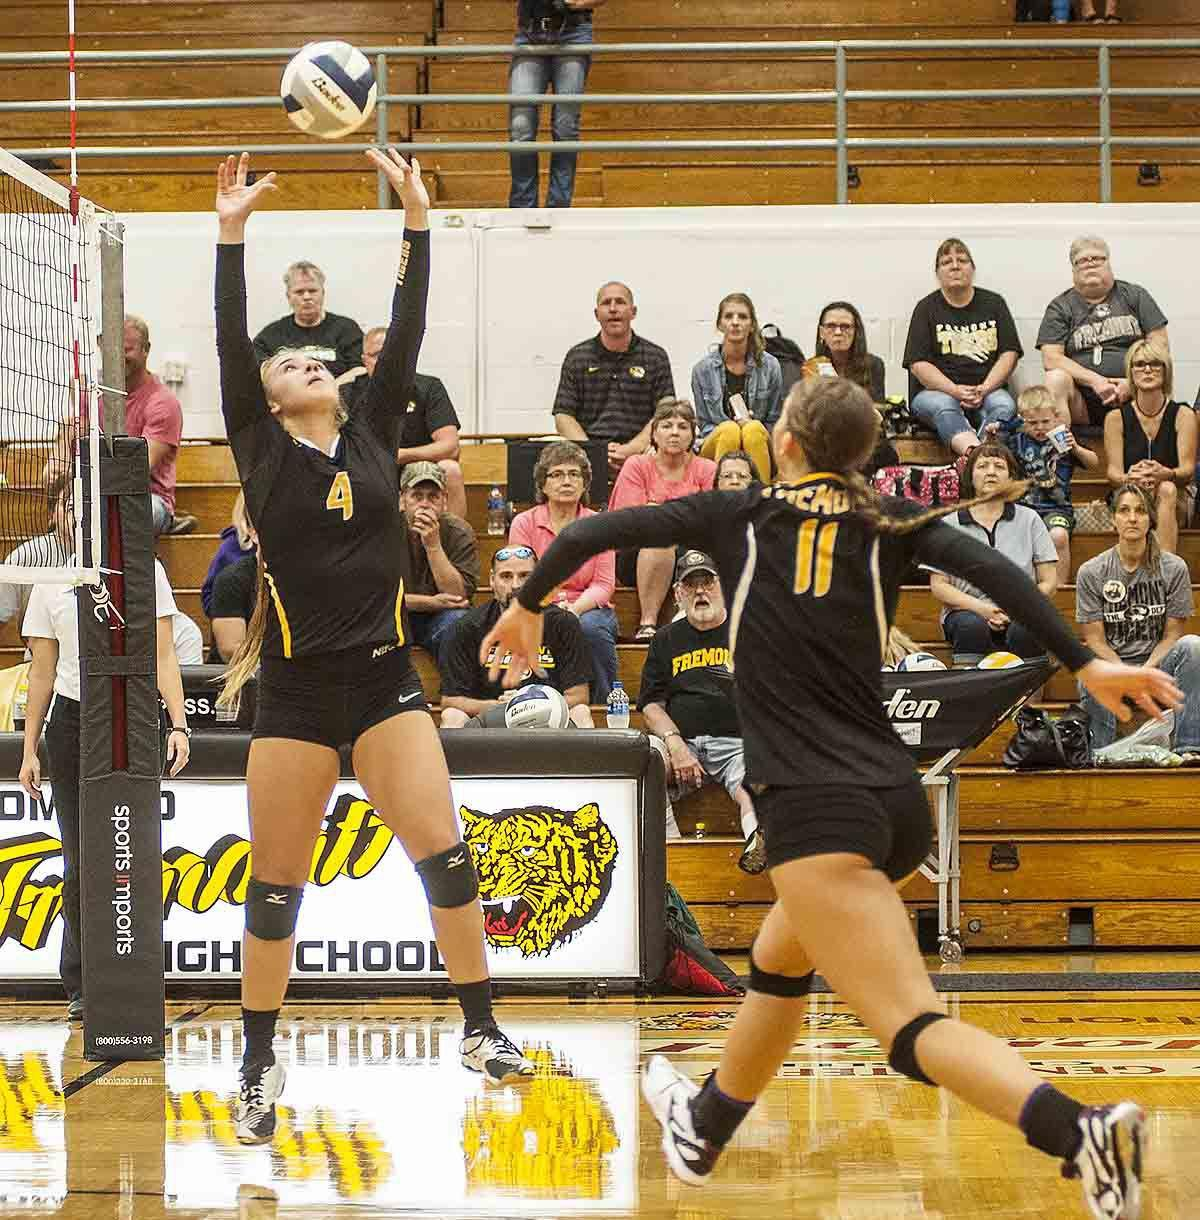 Photos: Fremont volleyball vs. Grand Island, 9.12.17